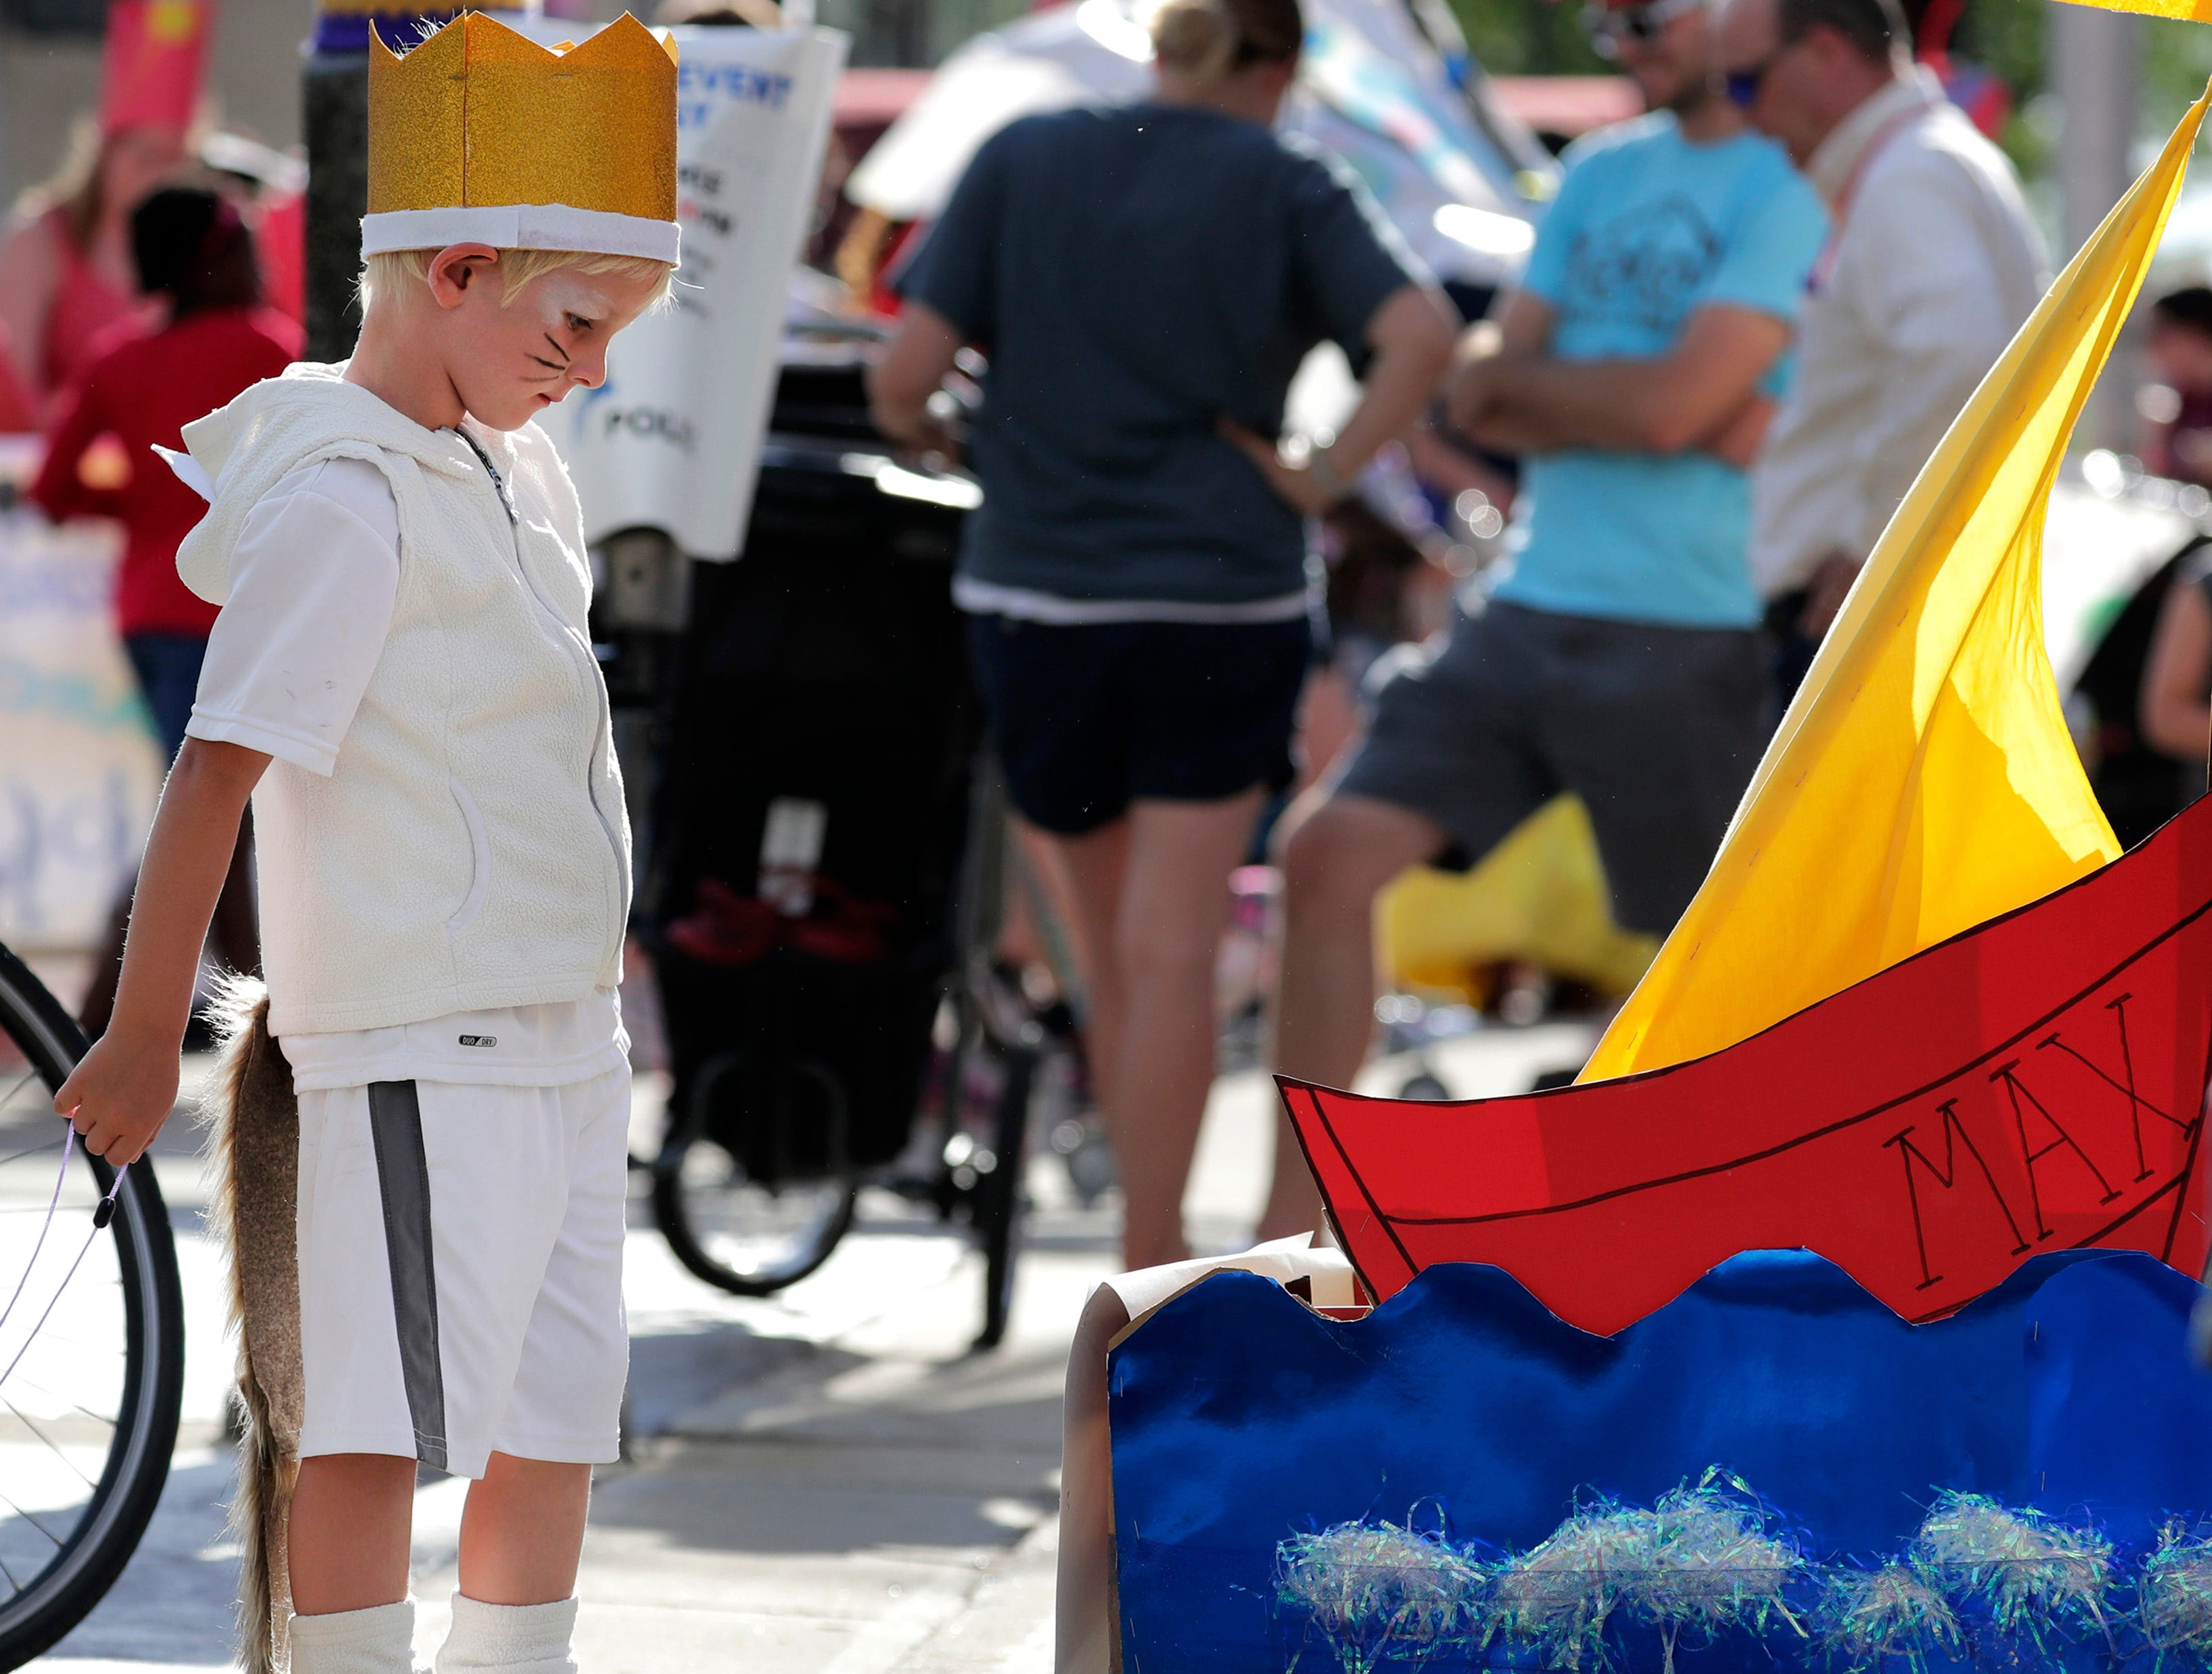 Max Isaacson, 5, of Appleton gets reading for the 10th annual Children's Parade Wednesday, July 25, 2018, in Appleton, Wis. Danny Damiani/USA TODAY NETWORK-Wisconsin